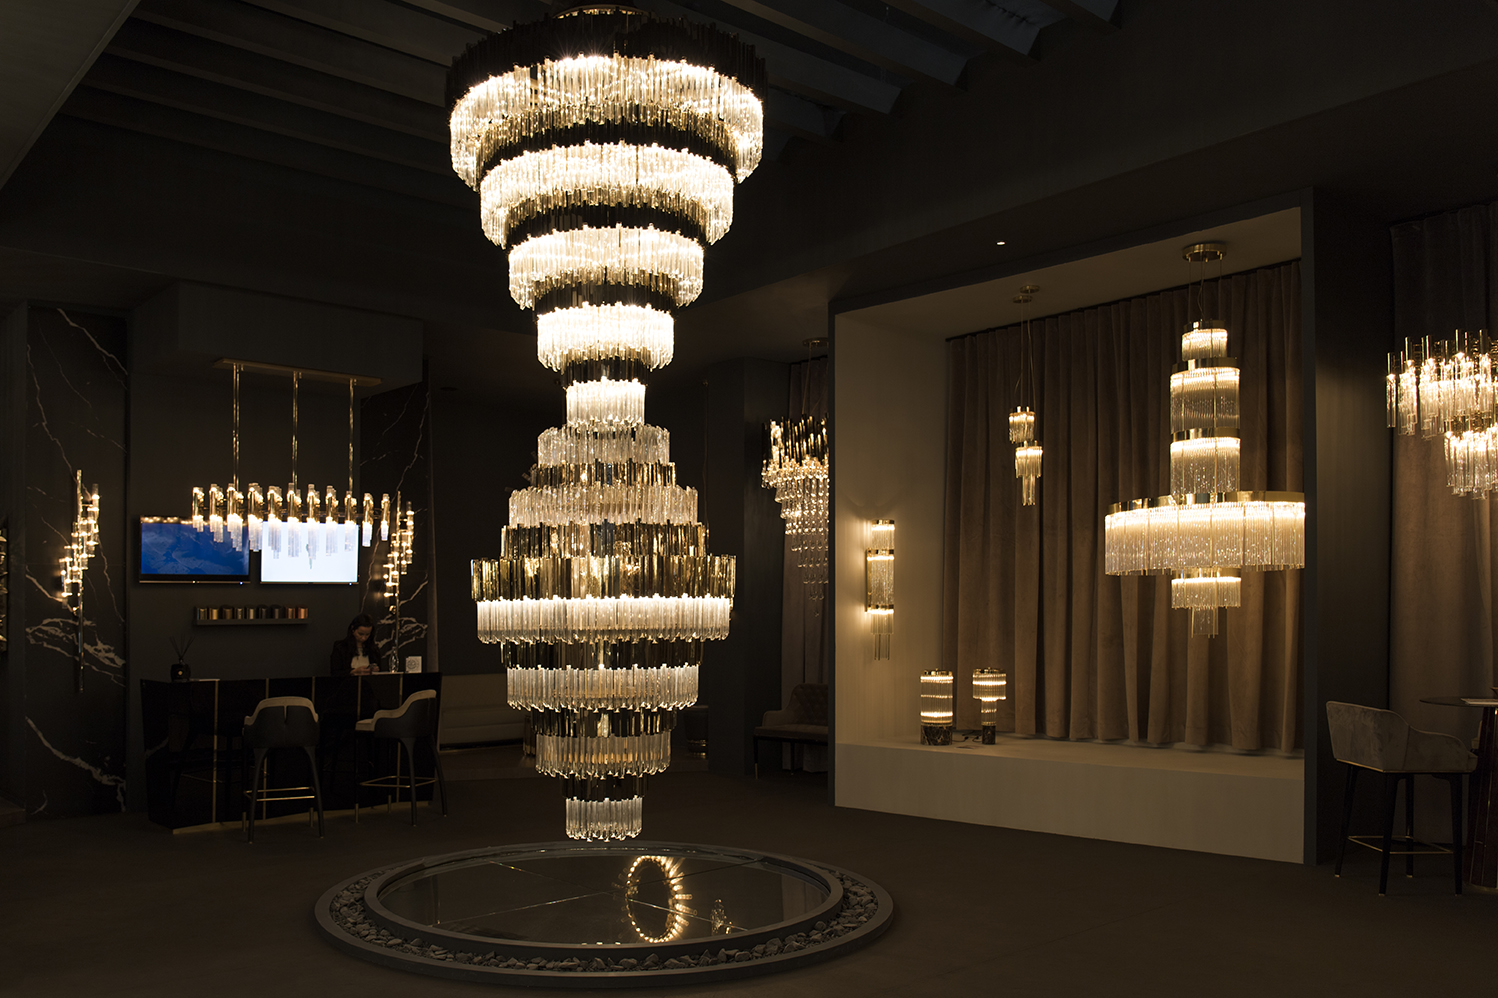 luxxu at Salone del Mobile 2019Salone del Mobile 2019 salone del mobile 2019 SALONE DEL MOBILE 2019: THE BEST OF THE EVENT IMG 0738 1